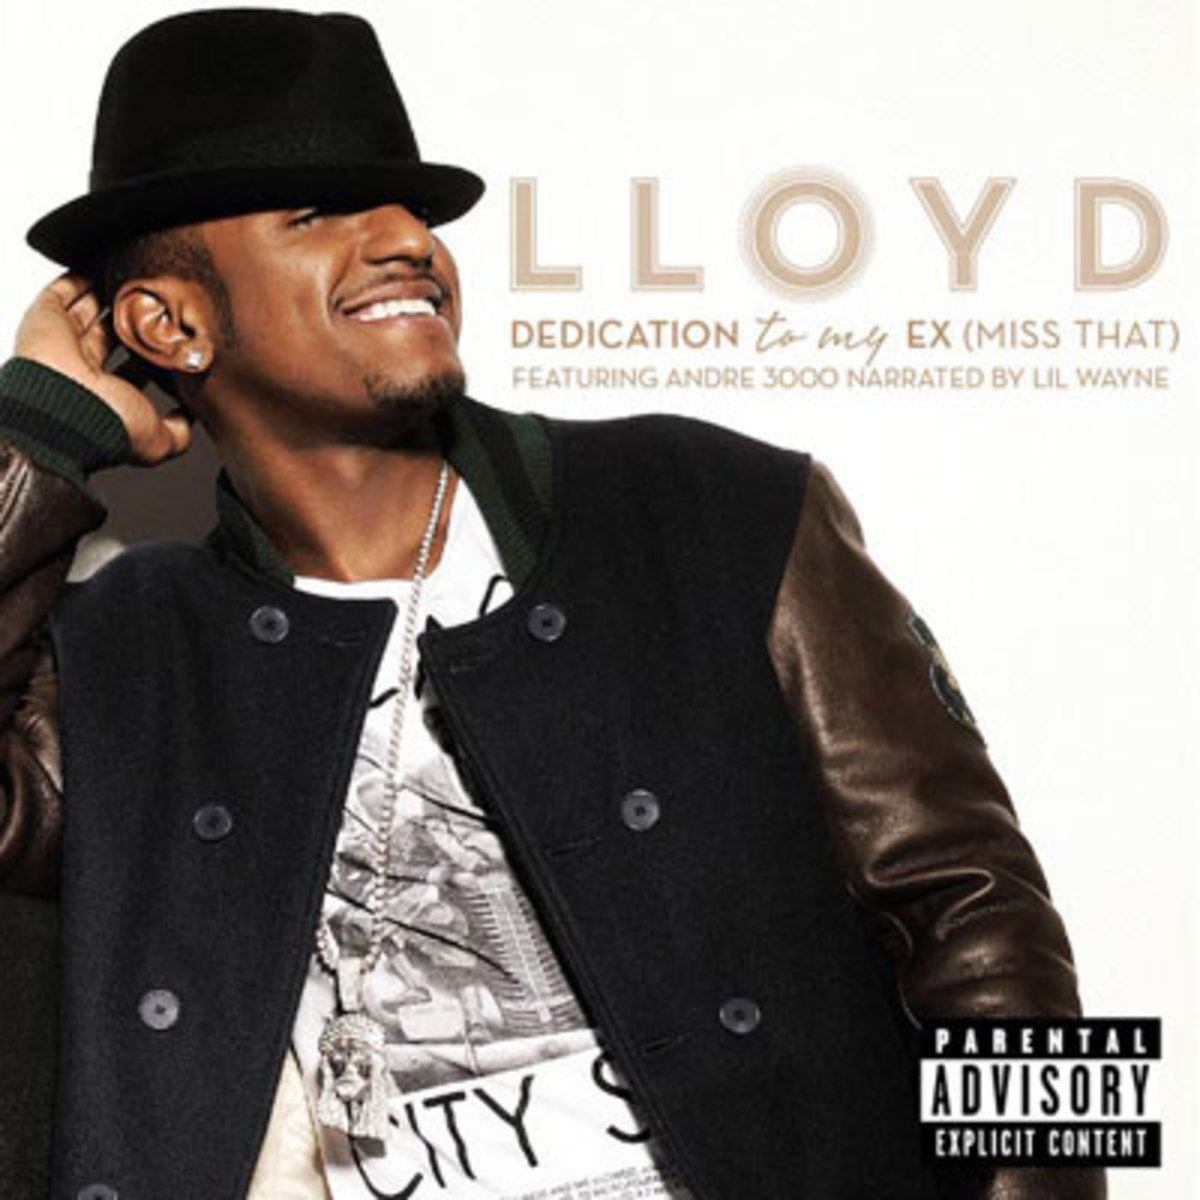 lloyd-dedicationex.jpg